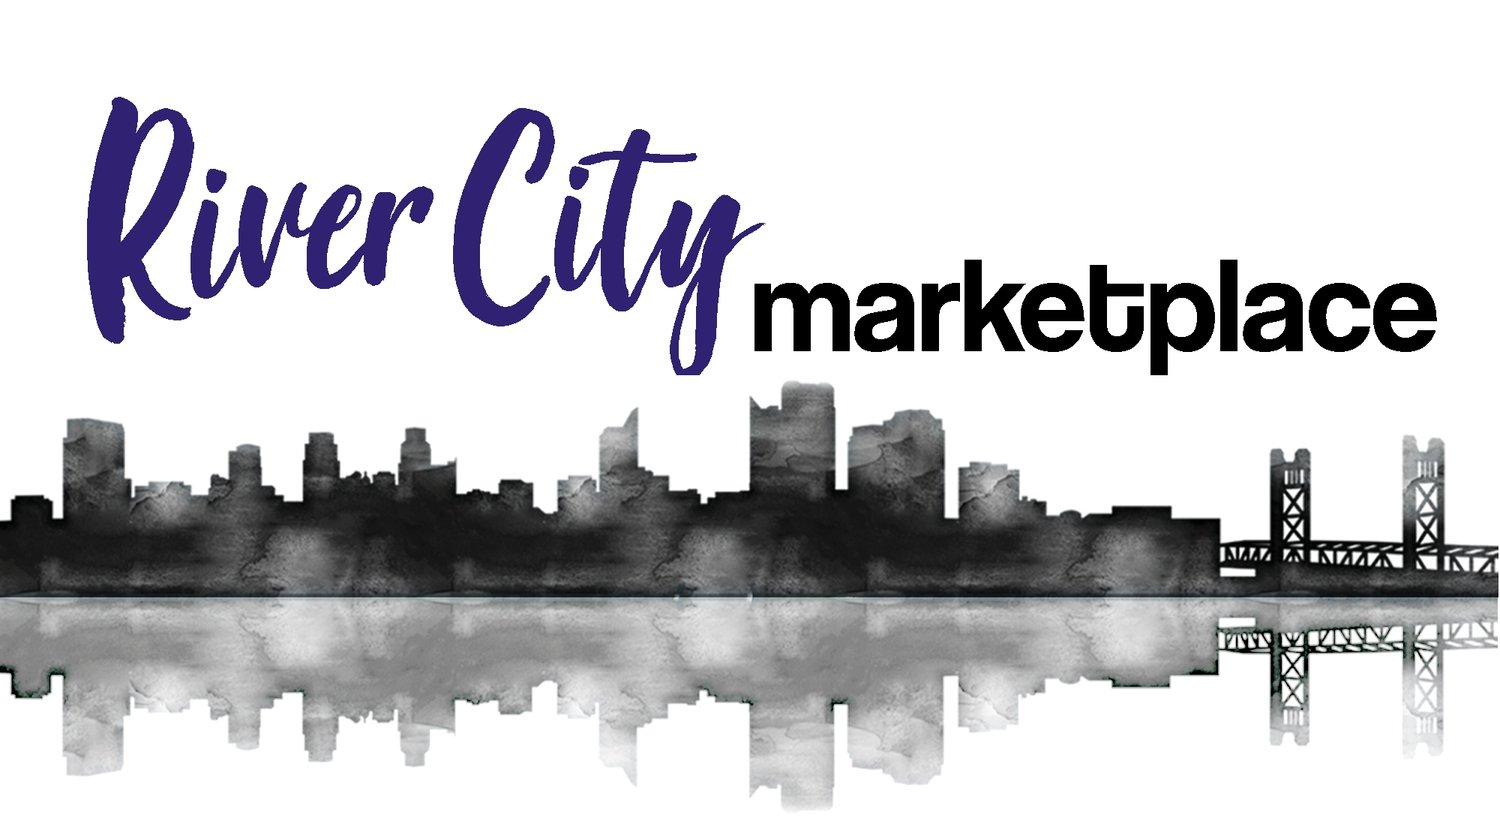 River City Marketplace